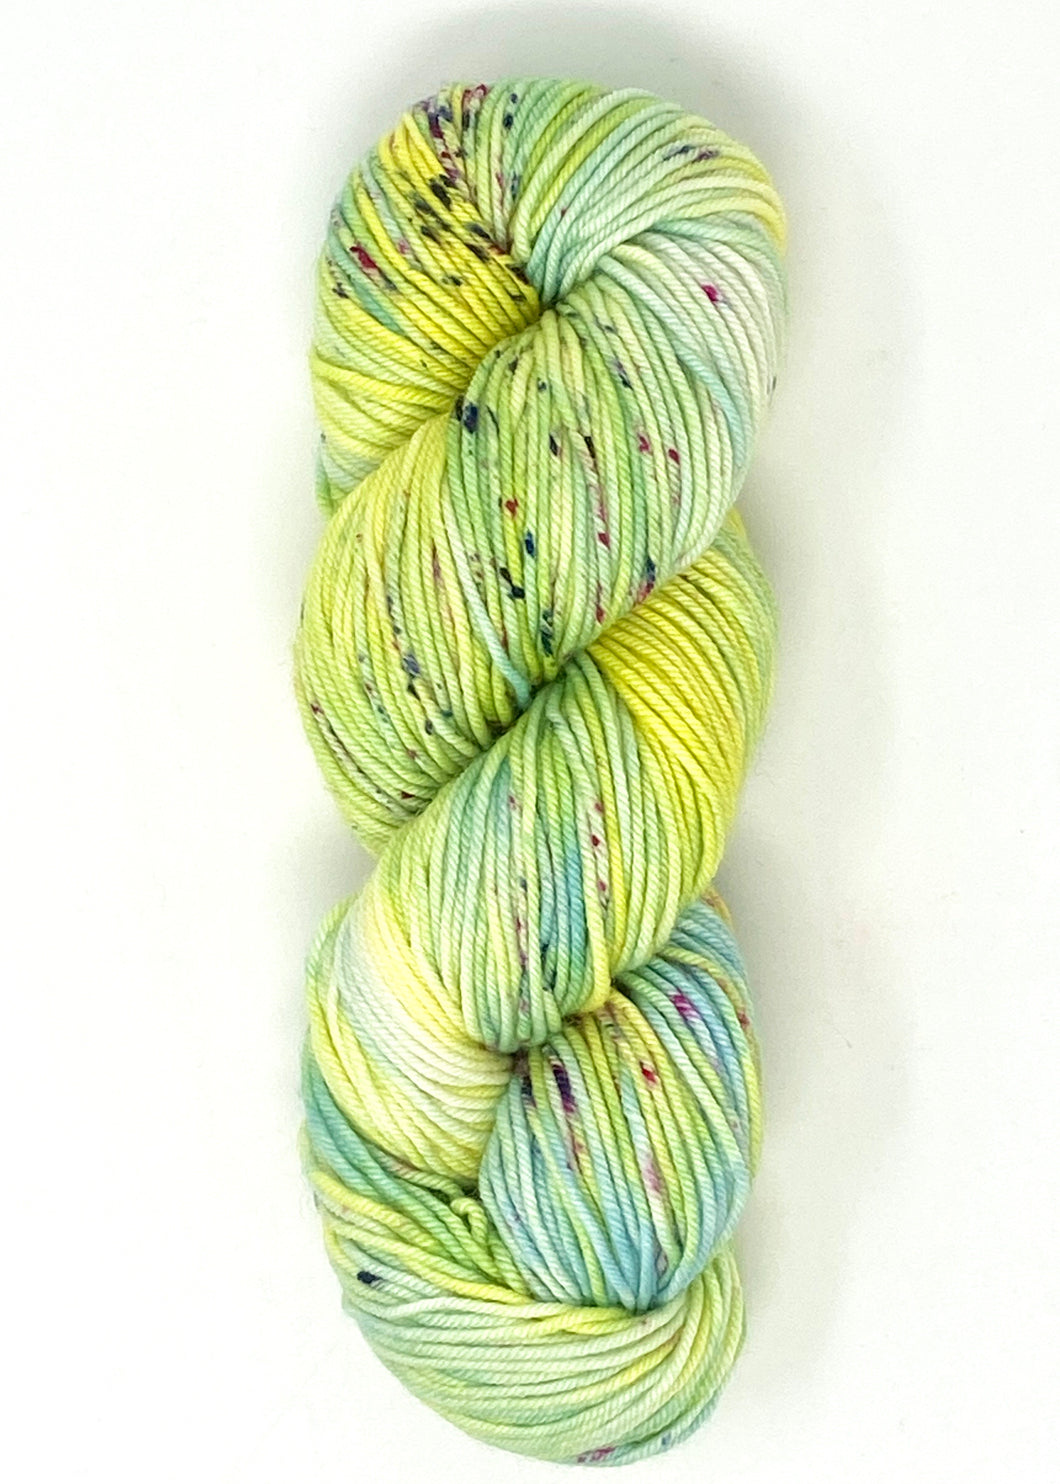 Dragon Tail - Baah Yarn Shasta